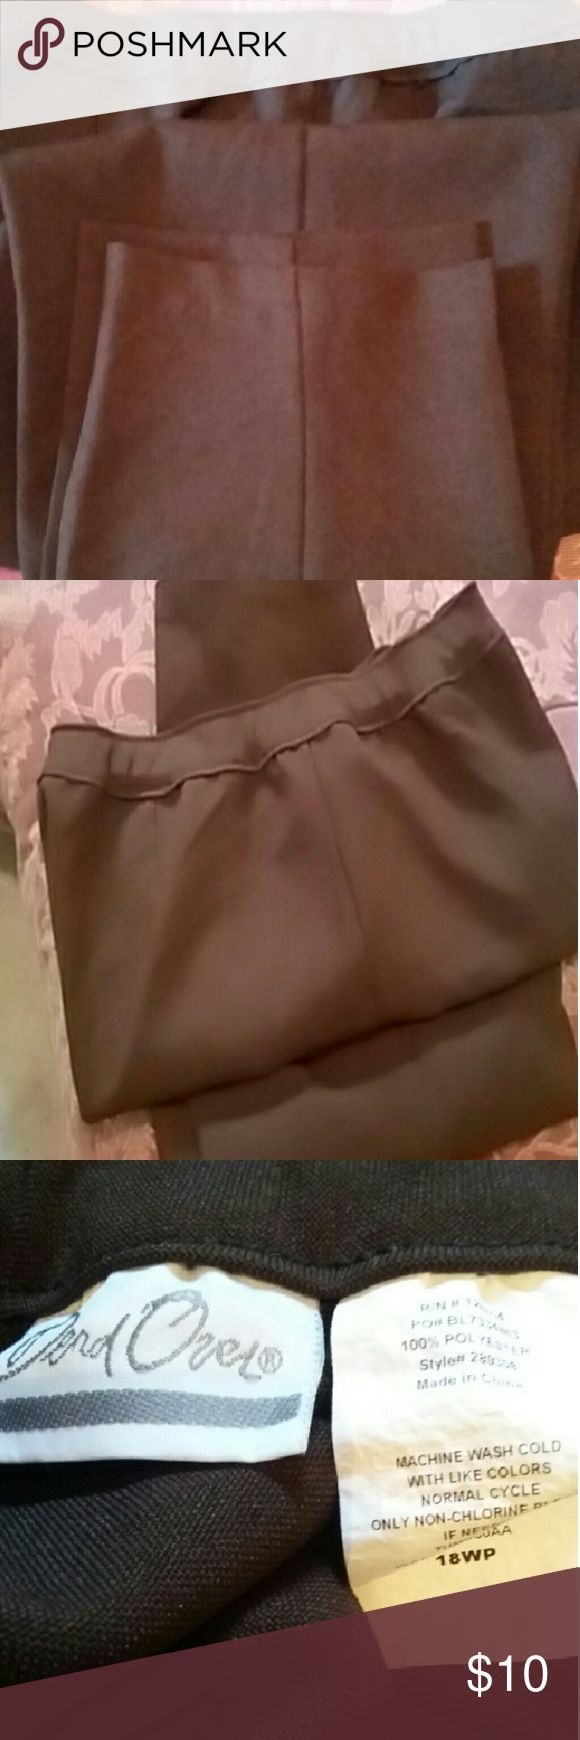 Bend Over Pants Dark brown wide elastic waist  band, 100% polyester, very little ironing, very good condition ,size is 18W P, but fits  a 16W P Bend Over  Pants Trousers